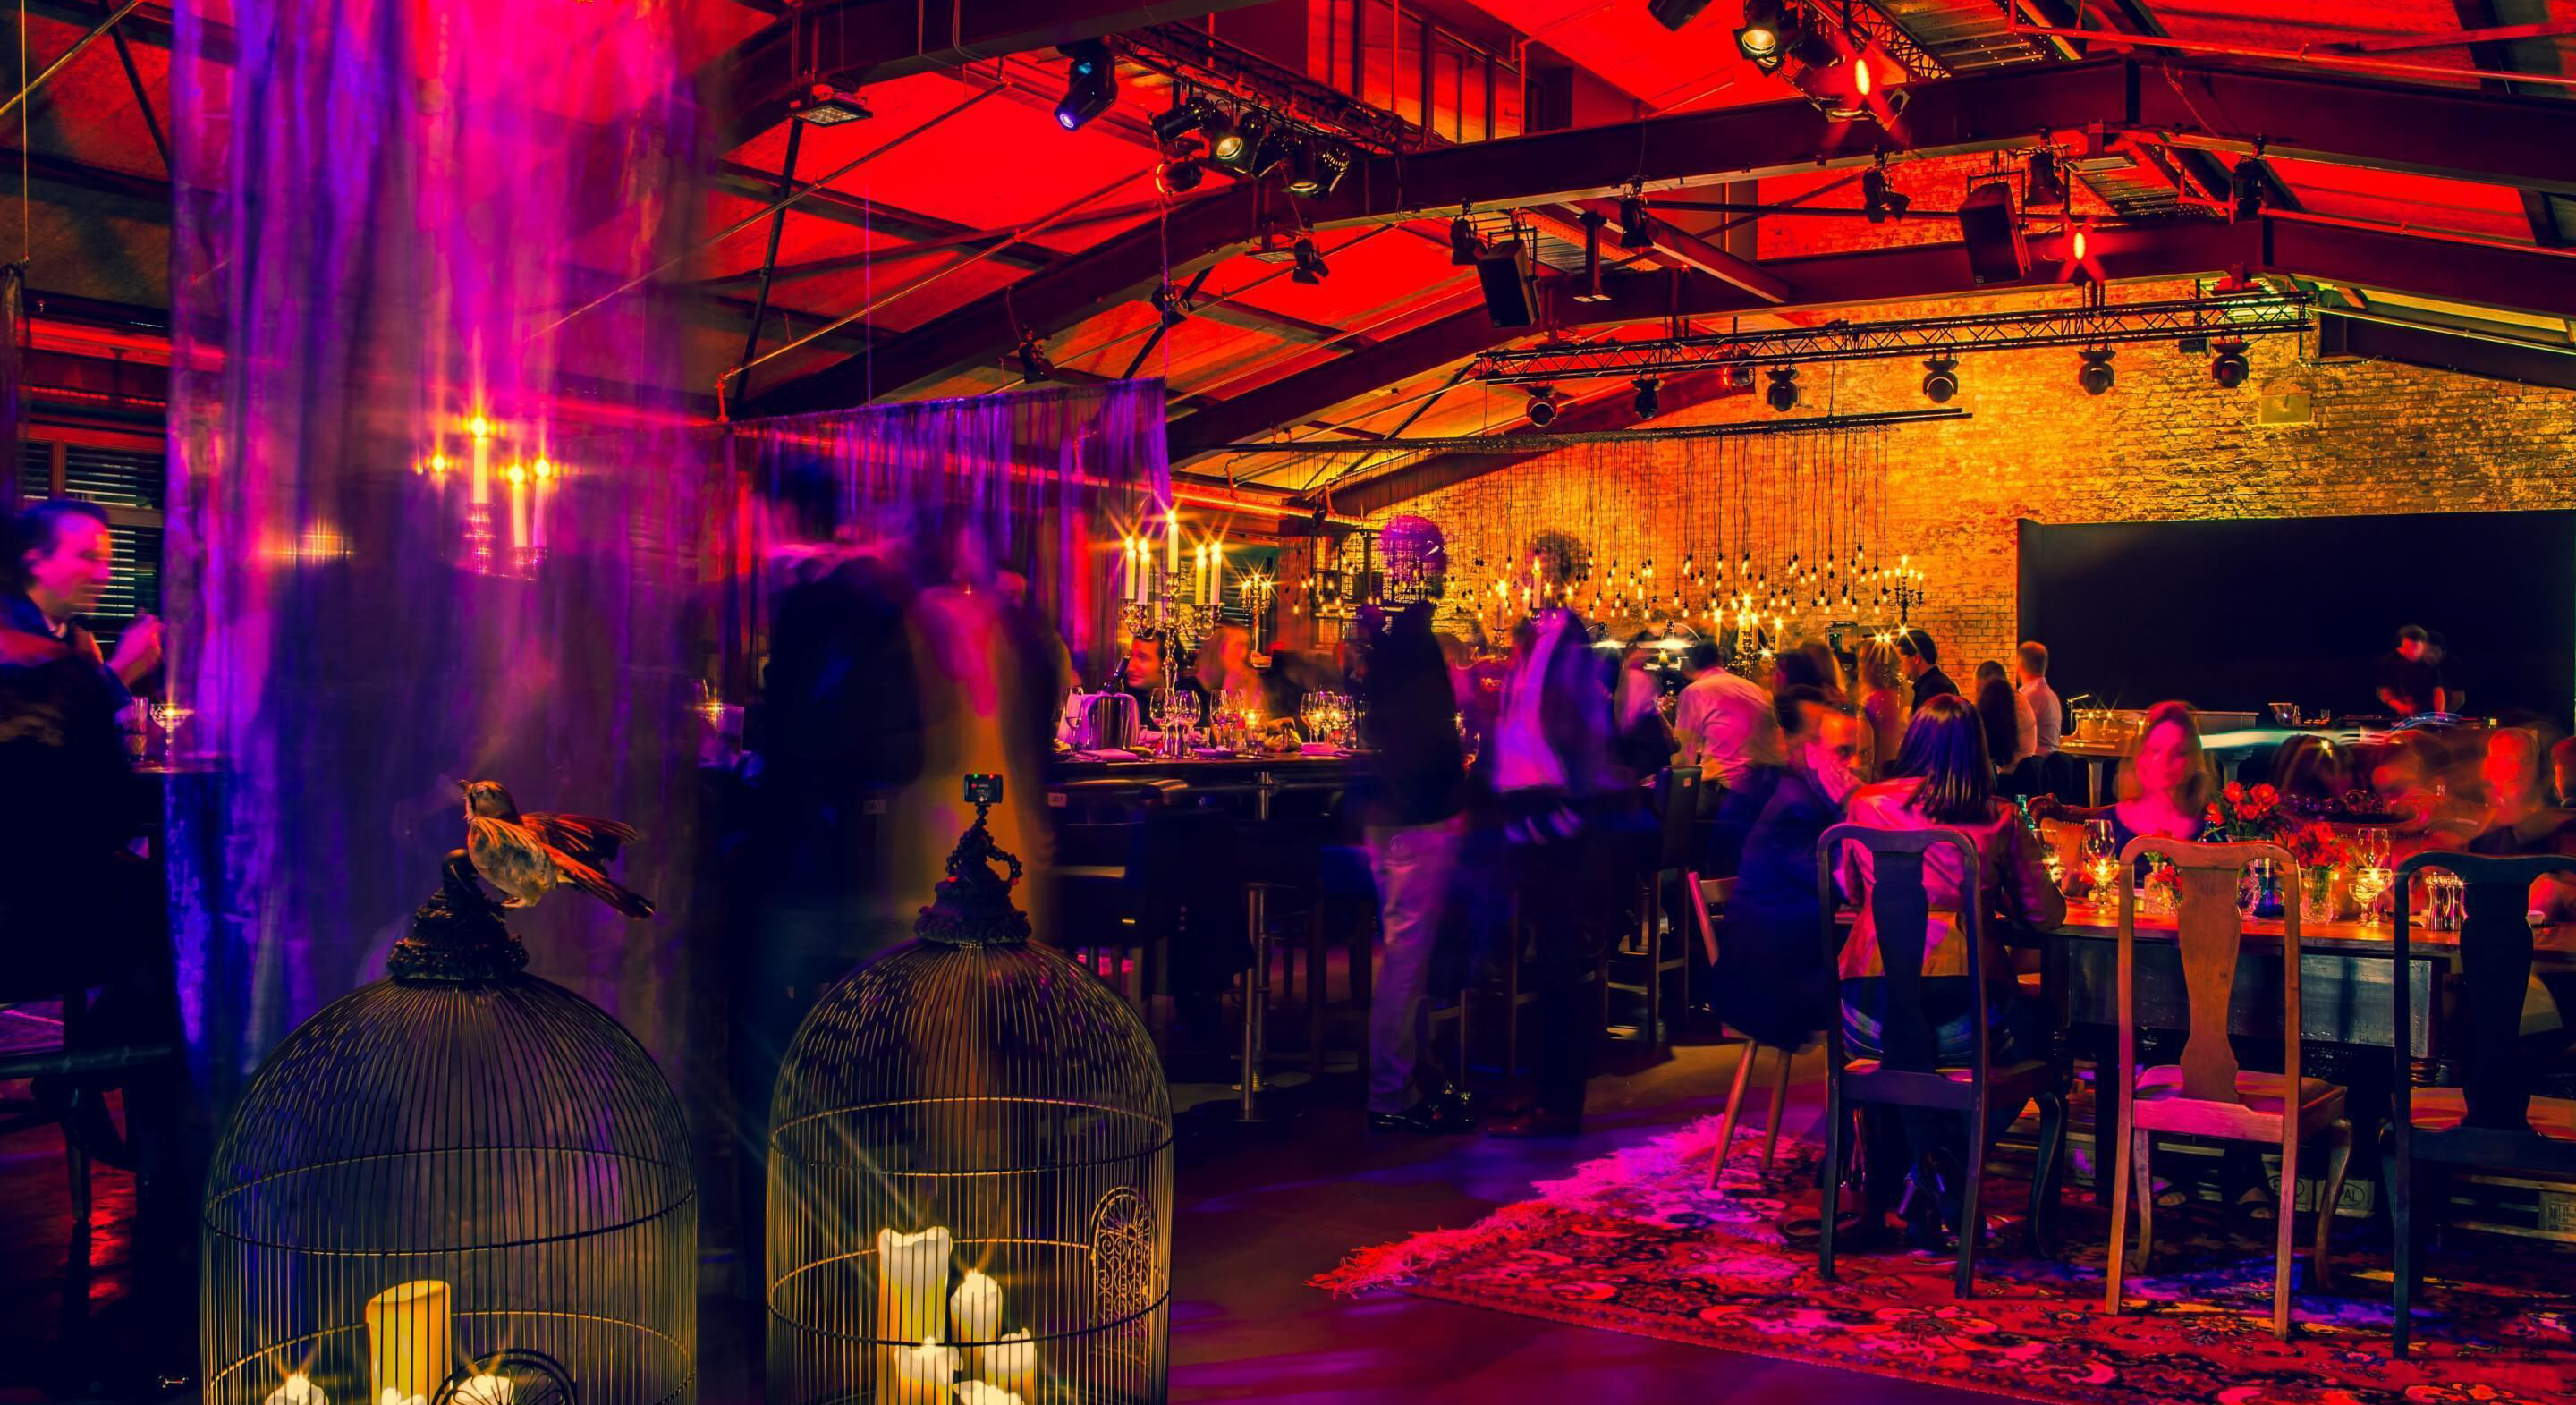 Servicemitarbeiter (m/w/d) Catering